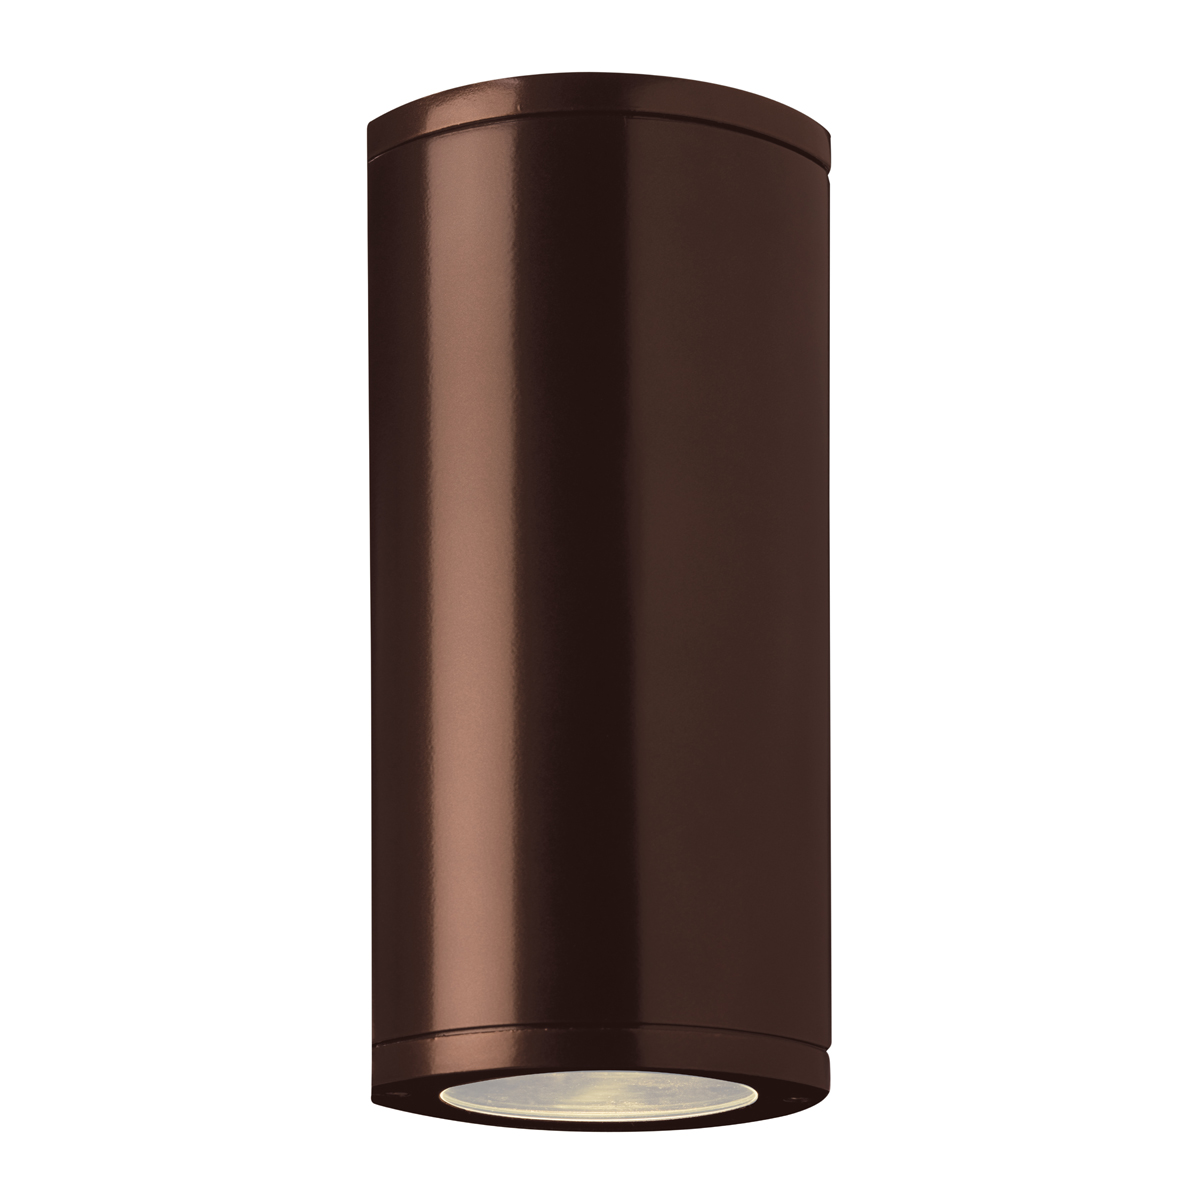 Access Lighting 20389MG Trident 14 Inch Wall Washer Shown In Bronze